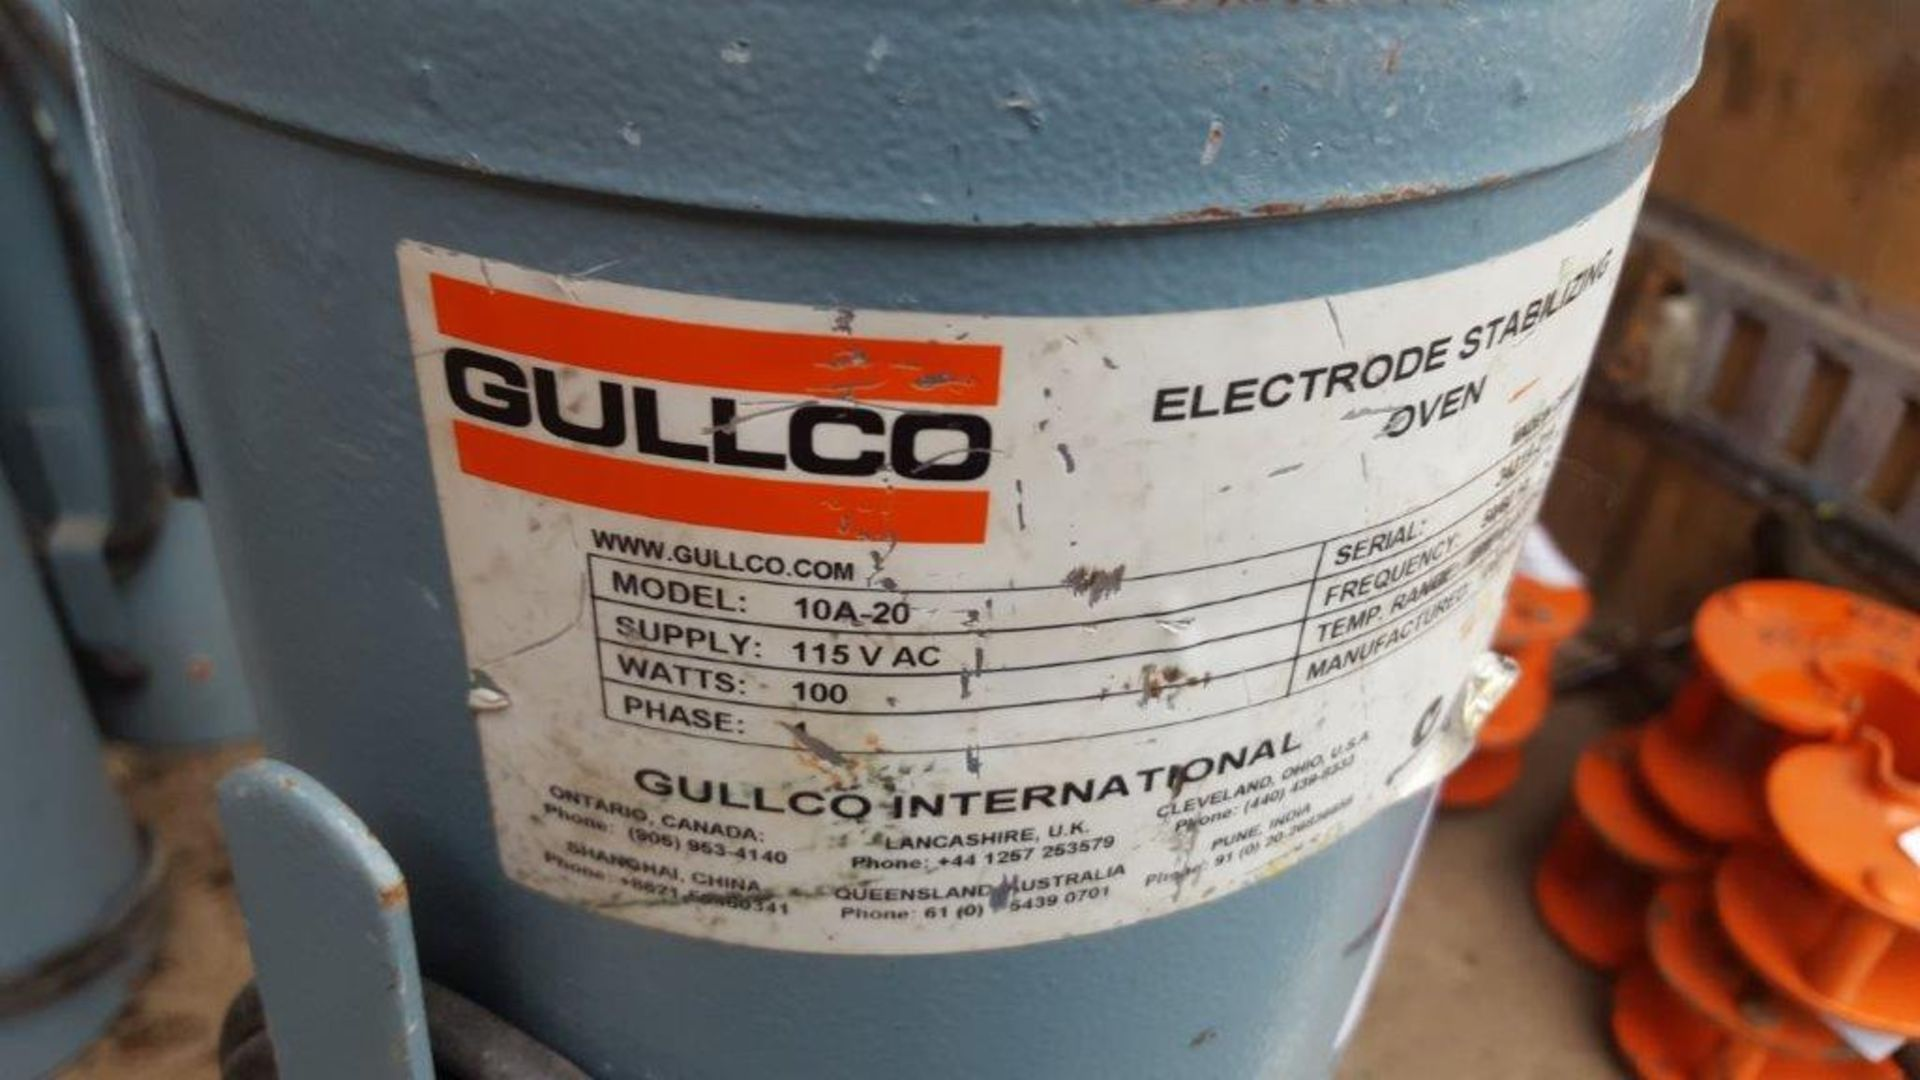 Lot 455 - Gullgo 10a-20 electrode oven